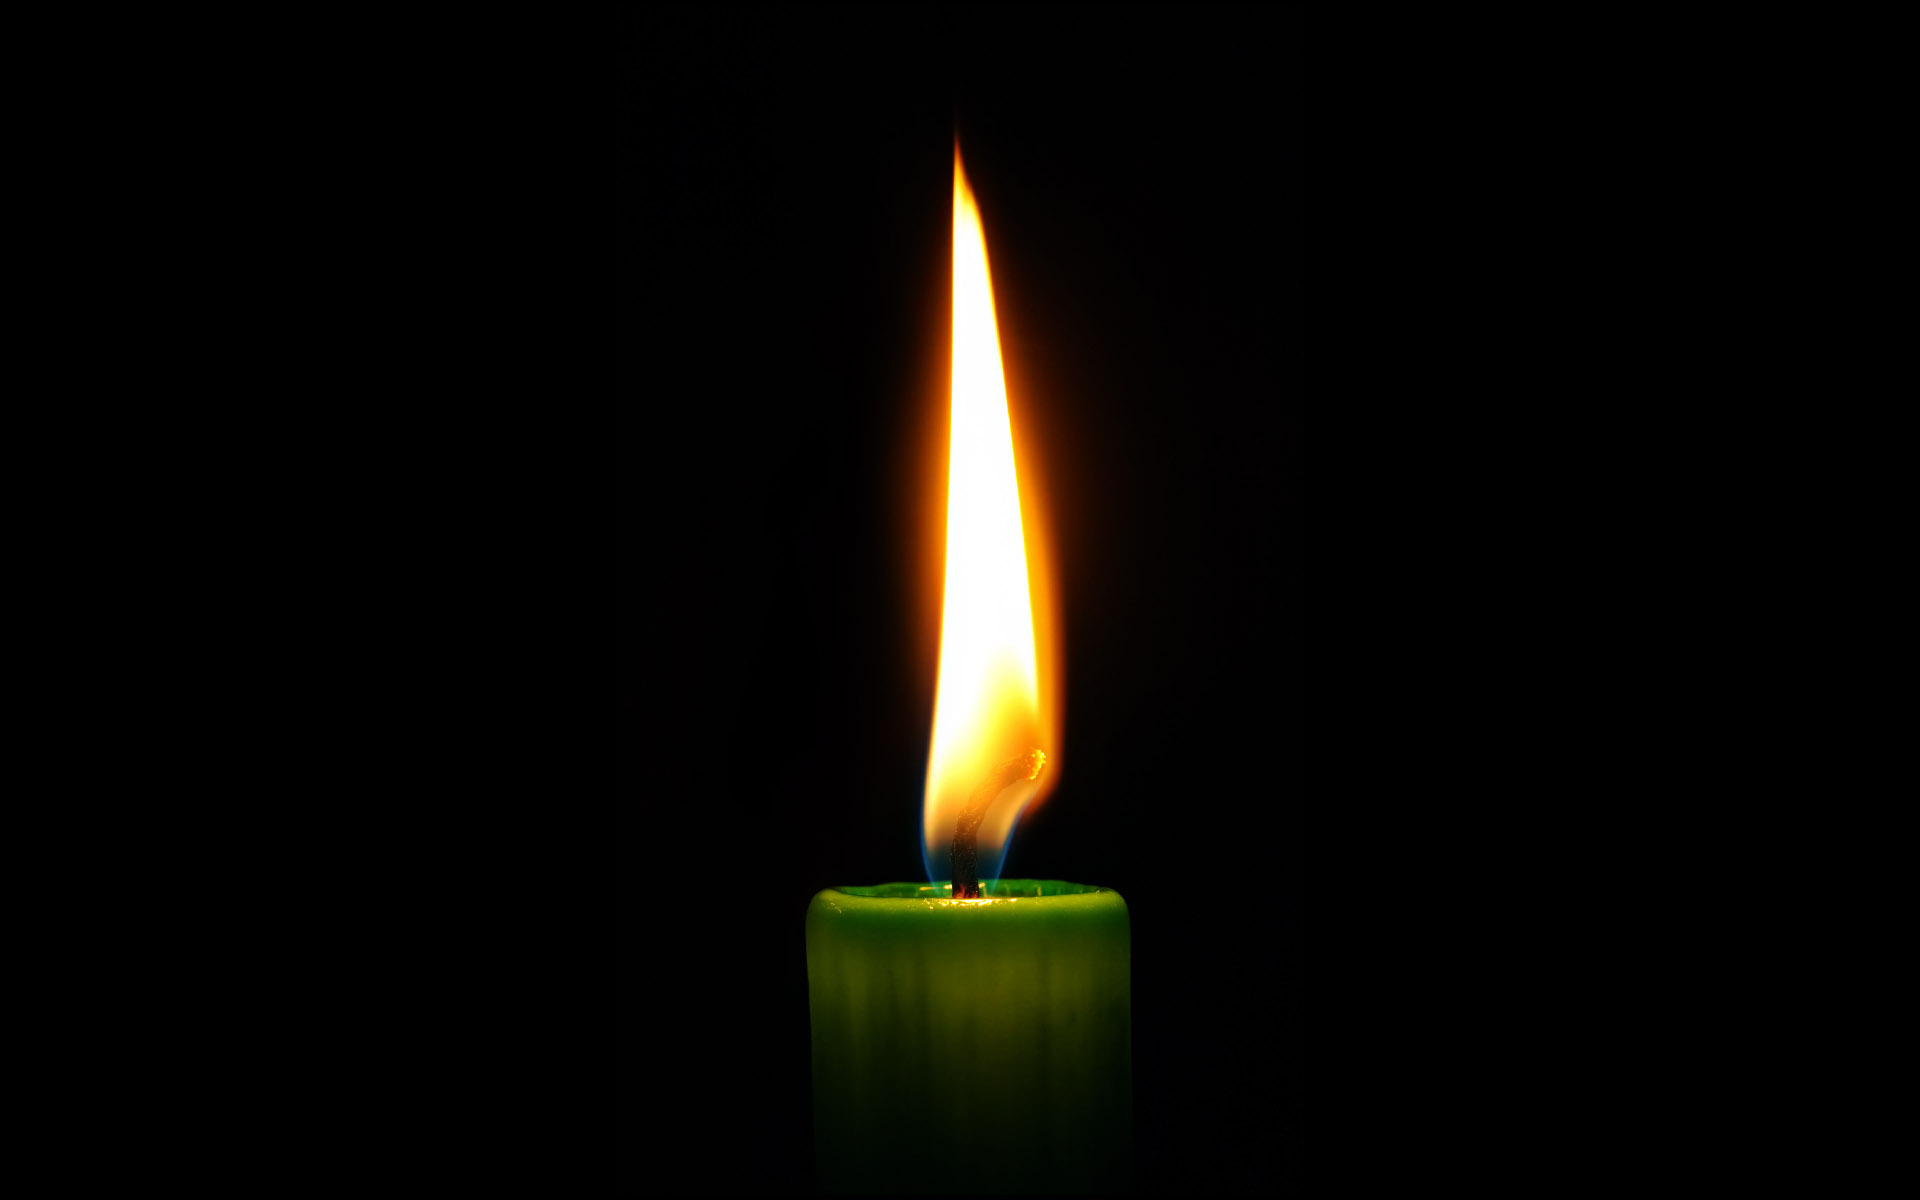 Candle wallpaper 8212